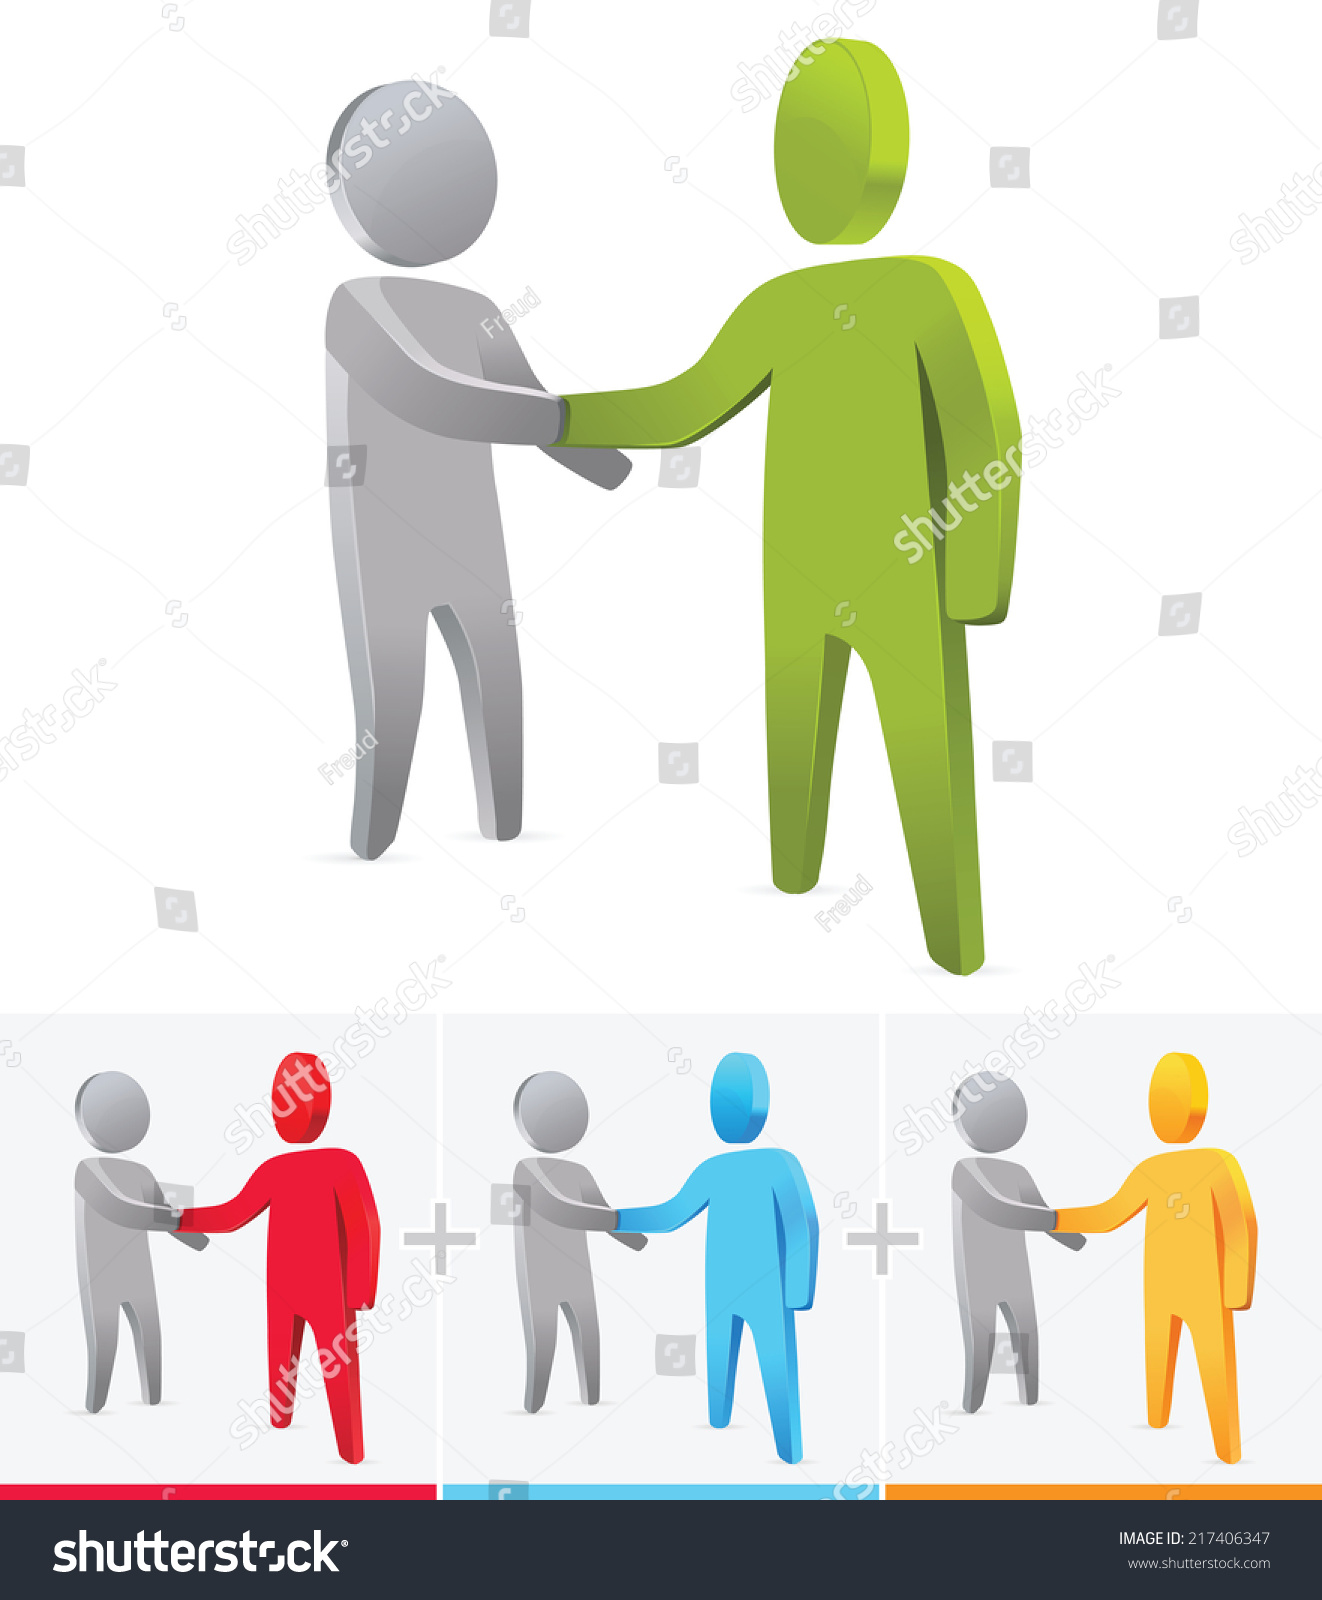 Royalty Free 3d Stick Figure Handshaking Business 217406347 Stock